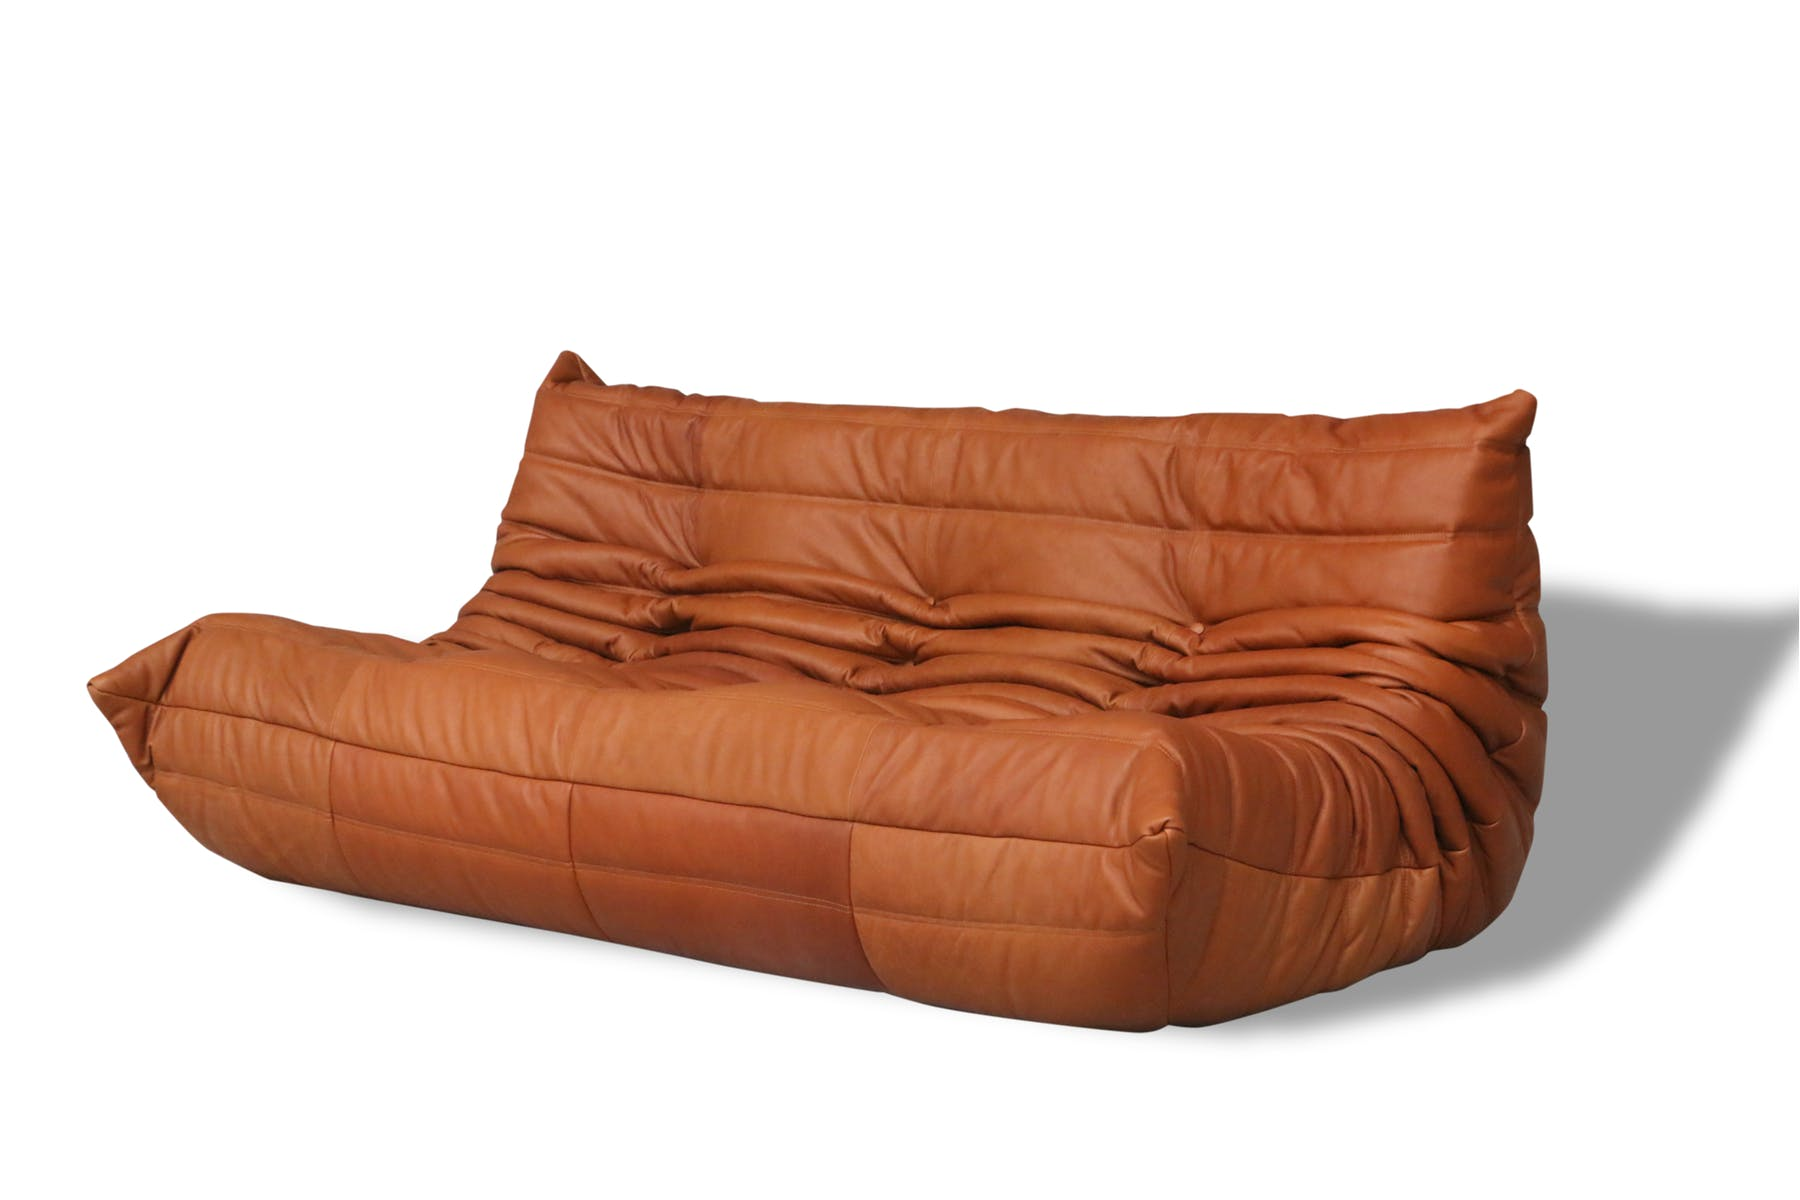 fav eshops vintage and antique - 3 seats sofa Togo Ligne Roset by Michel Ducaroy